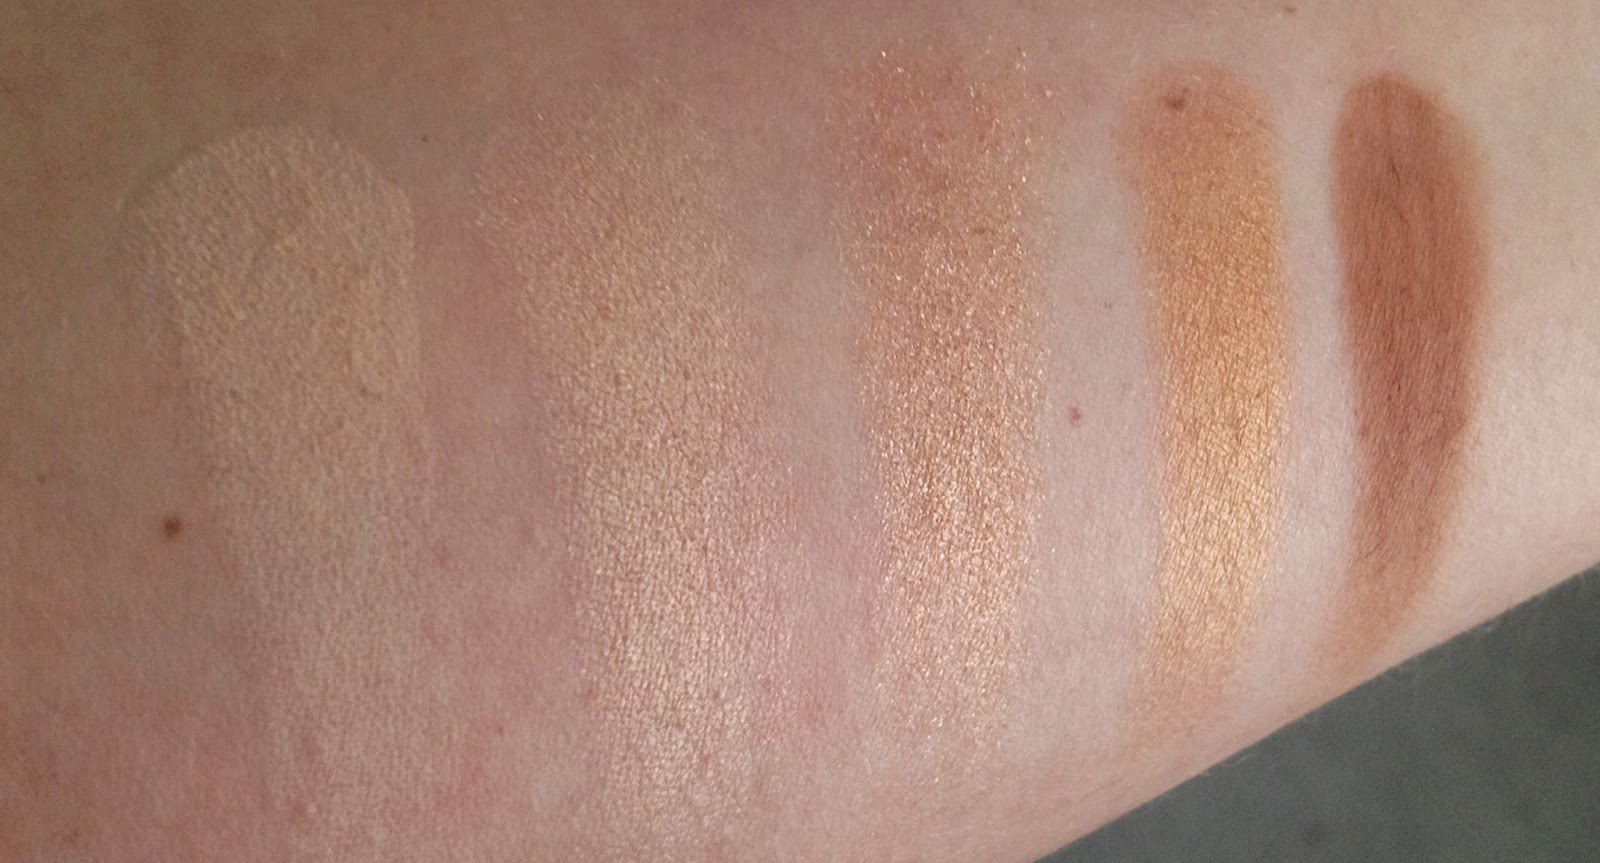 MAC Warm Neutral Palette - middle row swatches Brule, Vanilla Extract, Honey Lust, Amber Lights and Saddle